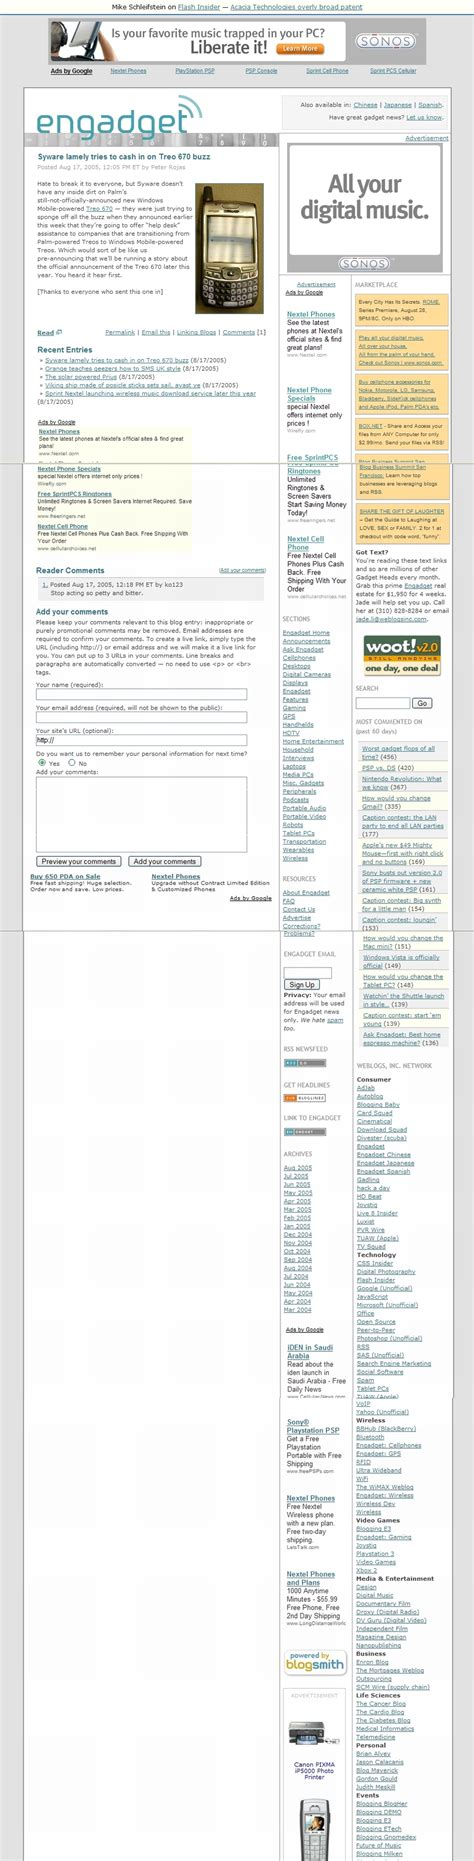 adsense tos daily archive 17 aug 05